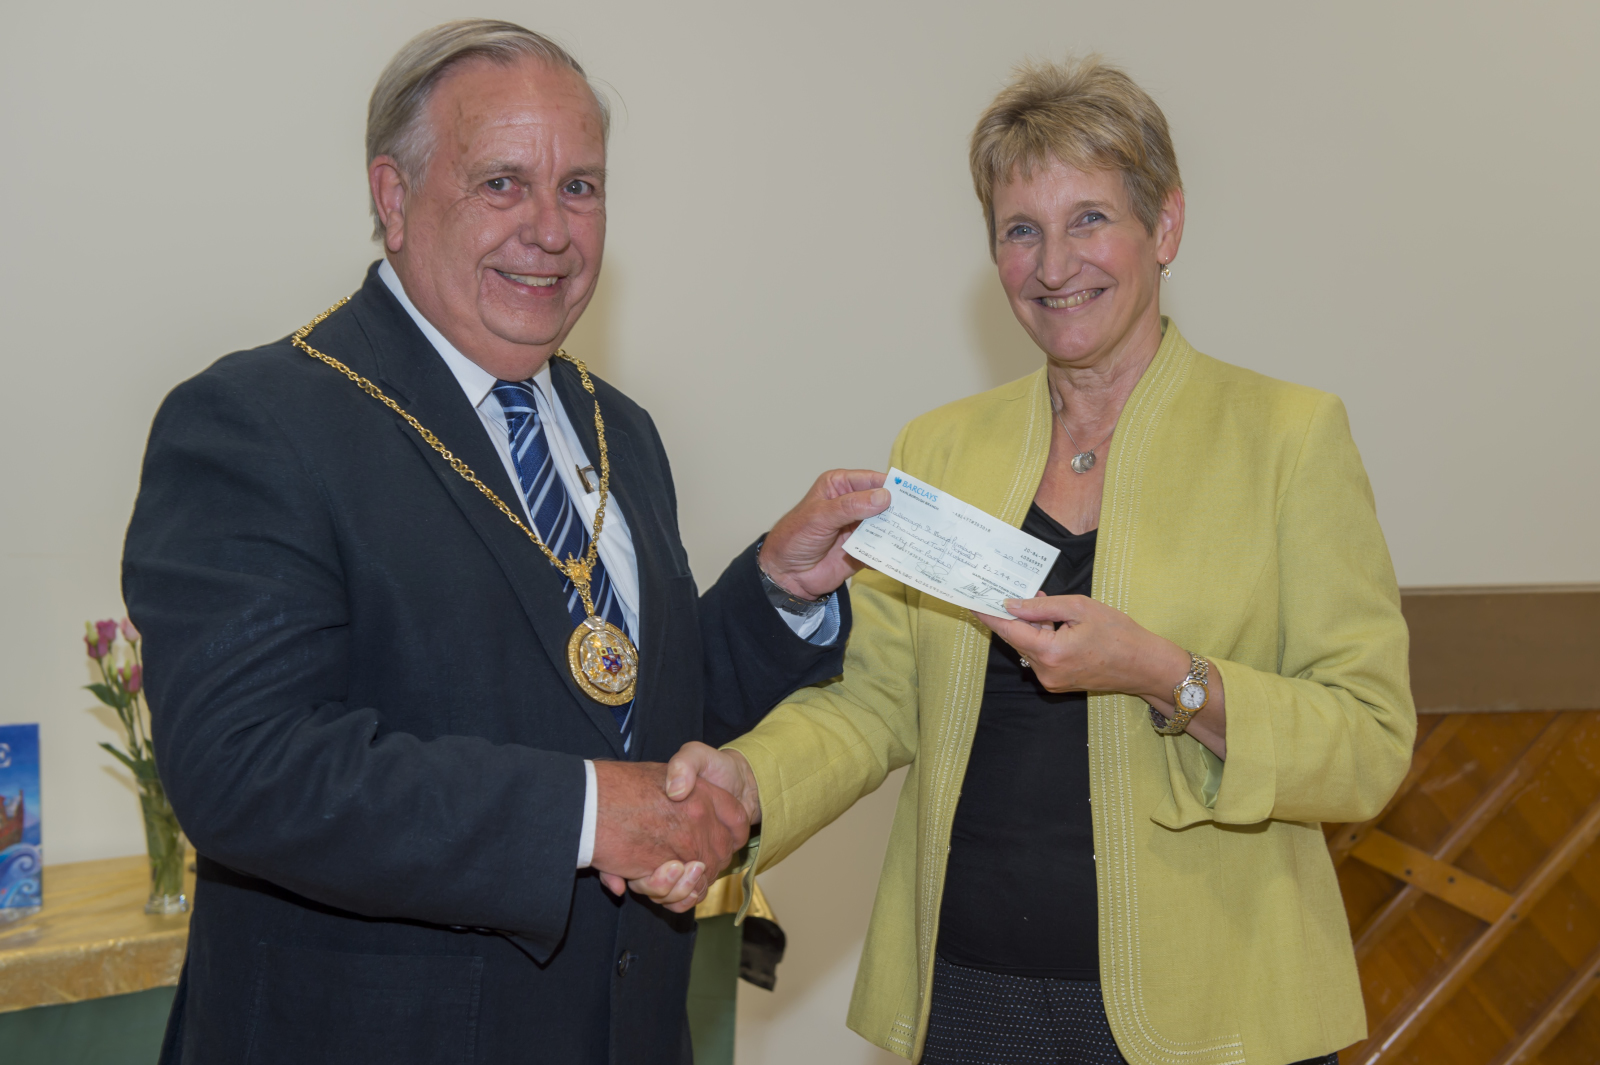 Mayor Mervyn Hall hands over the grant cheque for £2,244 to Head Teacher Anne Schwodler to support the purchase of 'C Touch' board and mount for the Key Stage 2 Complex Needs Resource Base